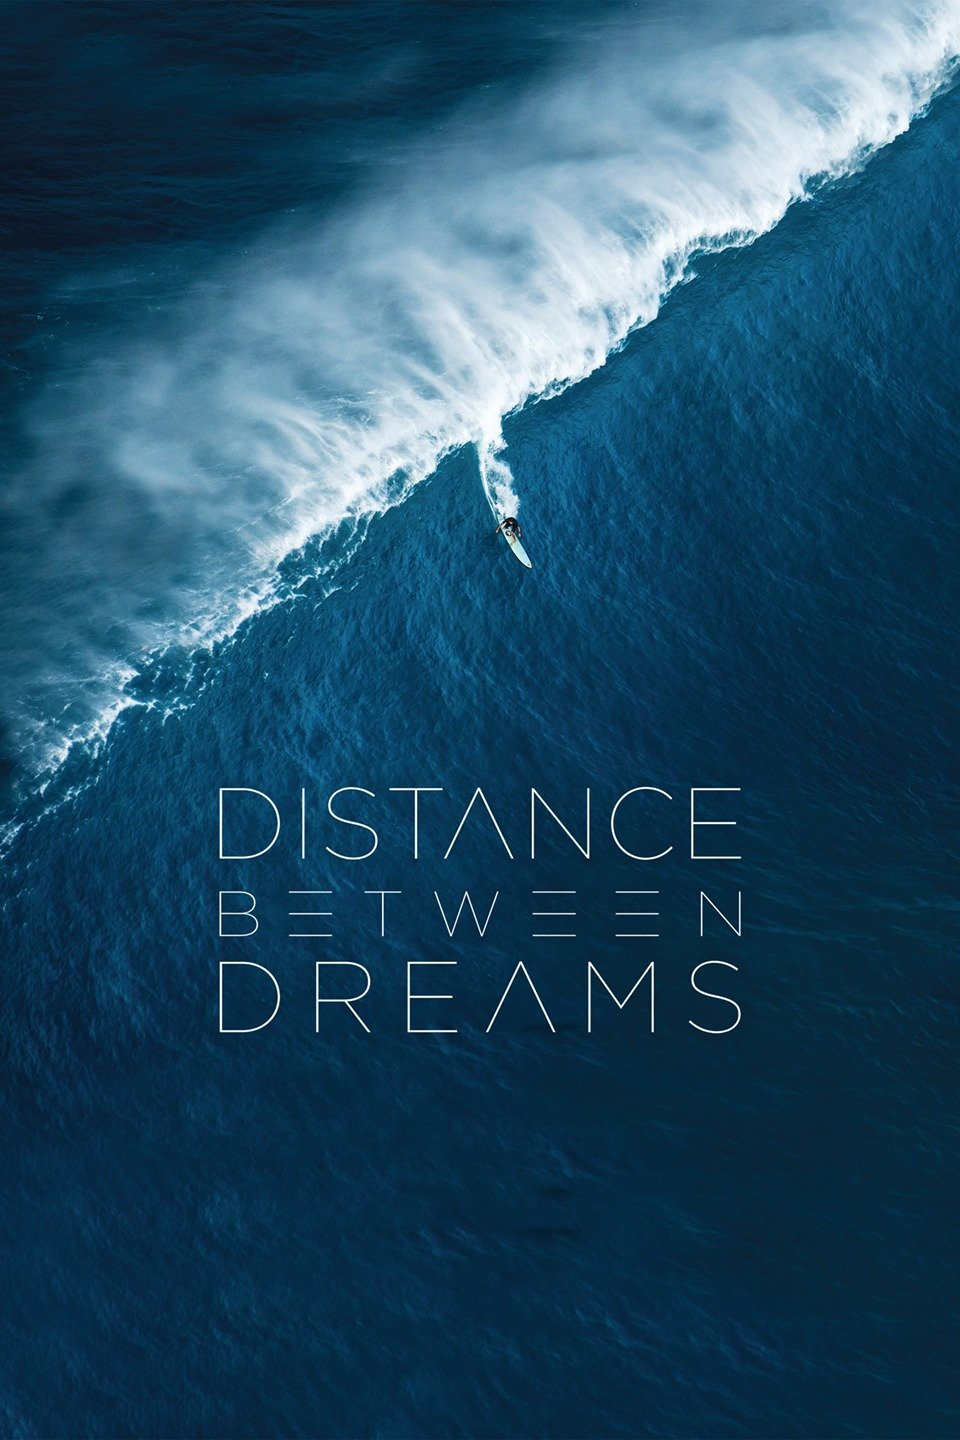 Distance between dreams - poster.jpg